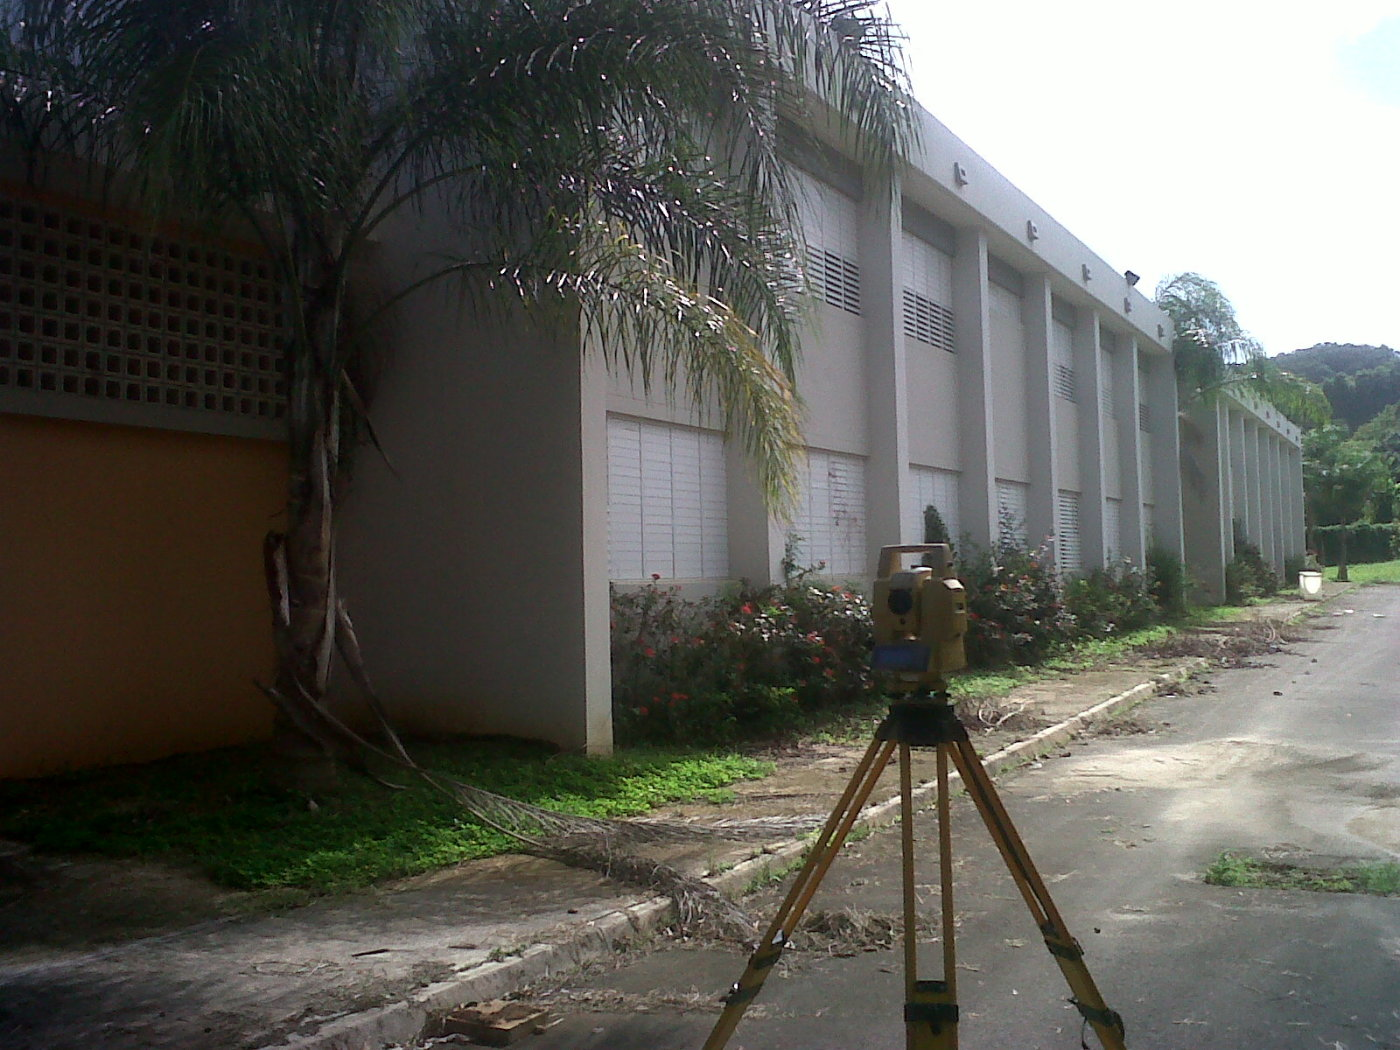 Surveying a school for new storm sewer - 2